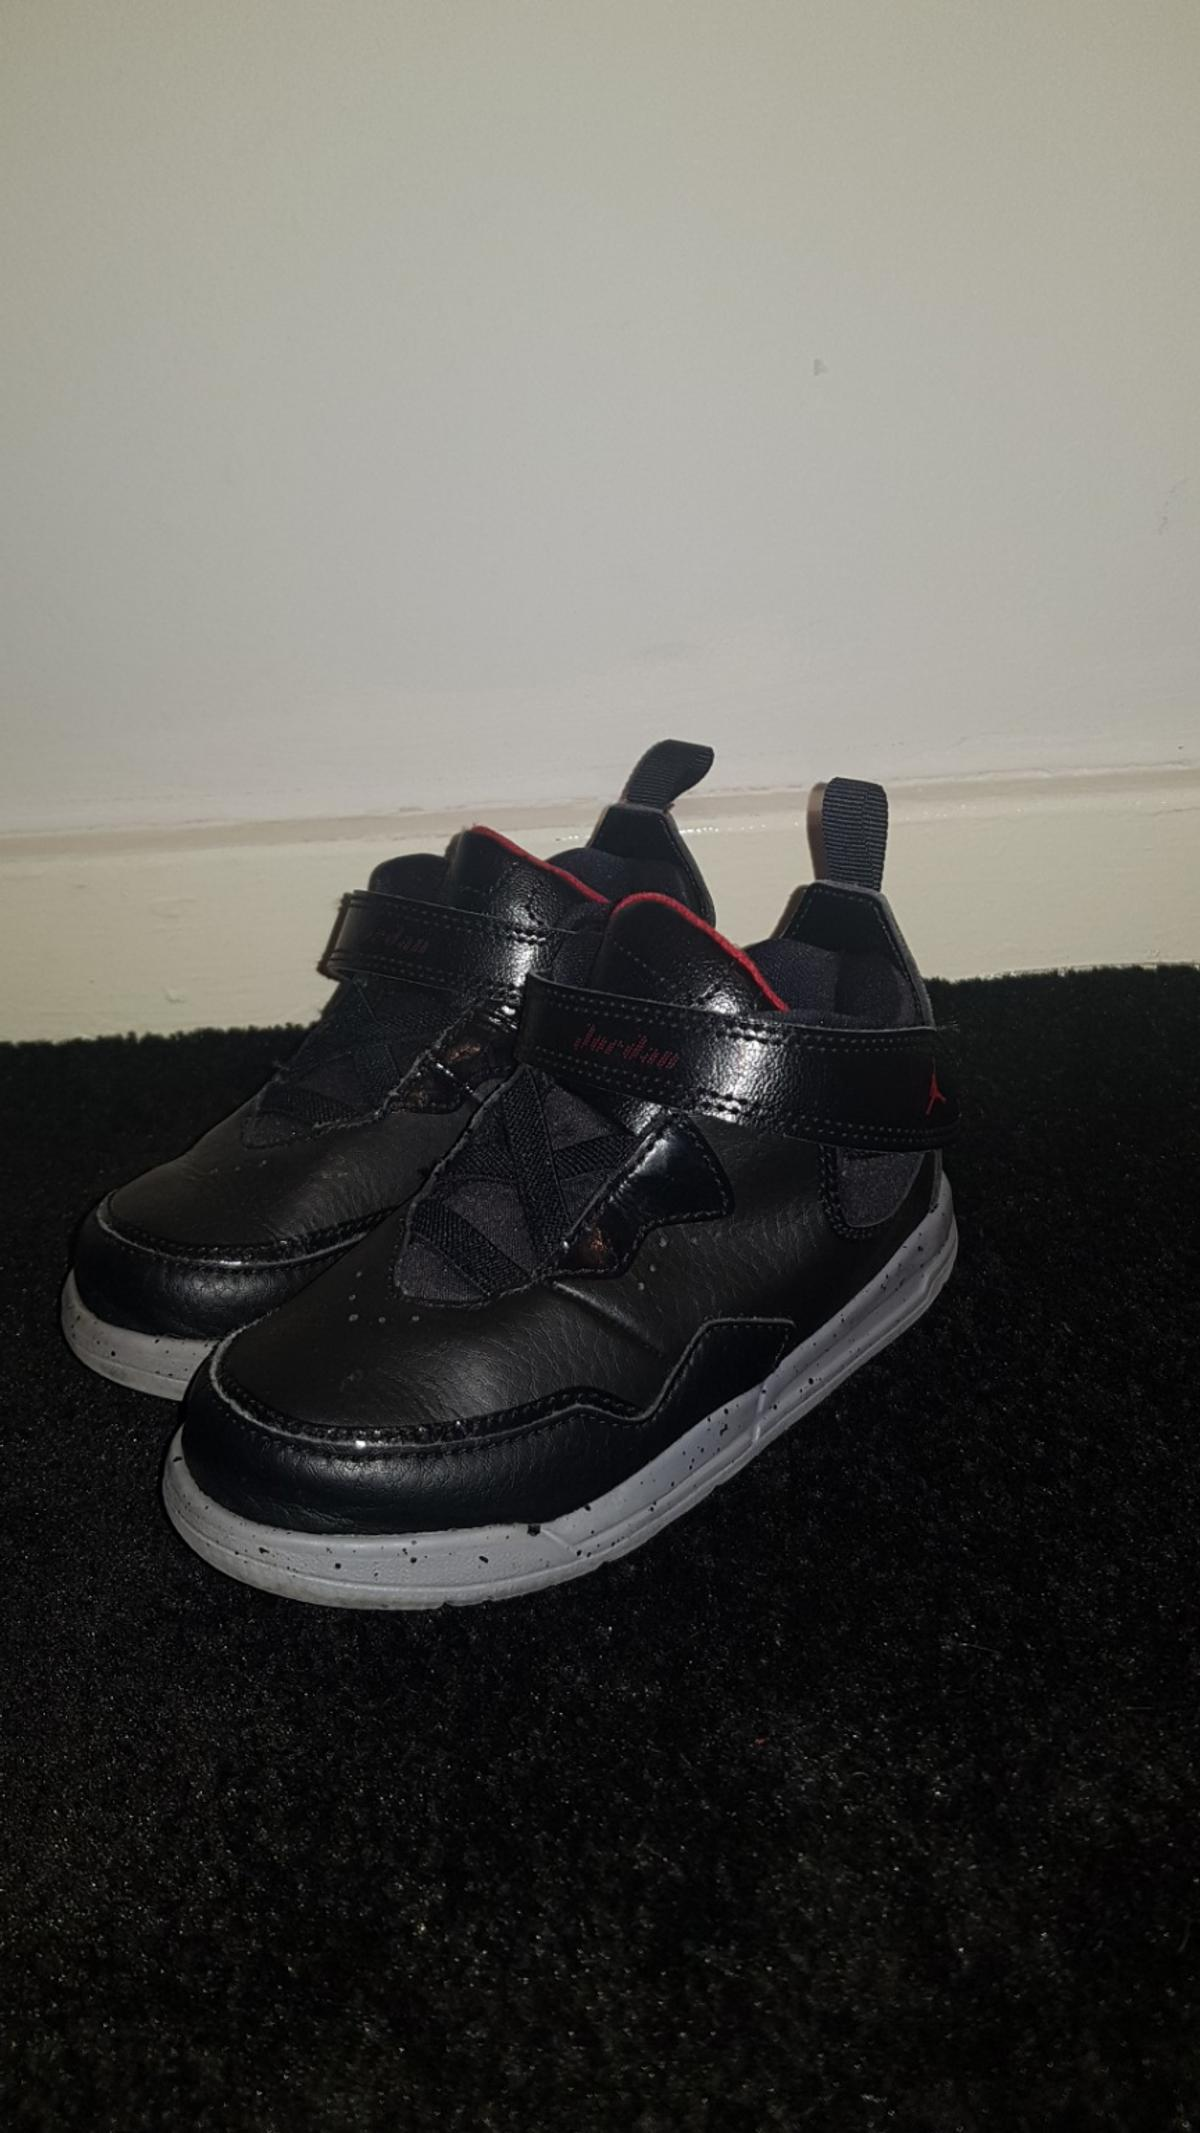 9891dcdb422 JORDANS infant UK 8.5 in N16 Hackney for £10.00 for sale - Shpock